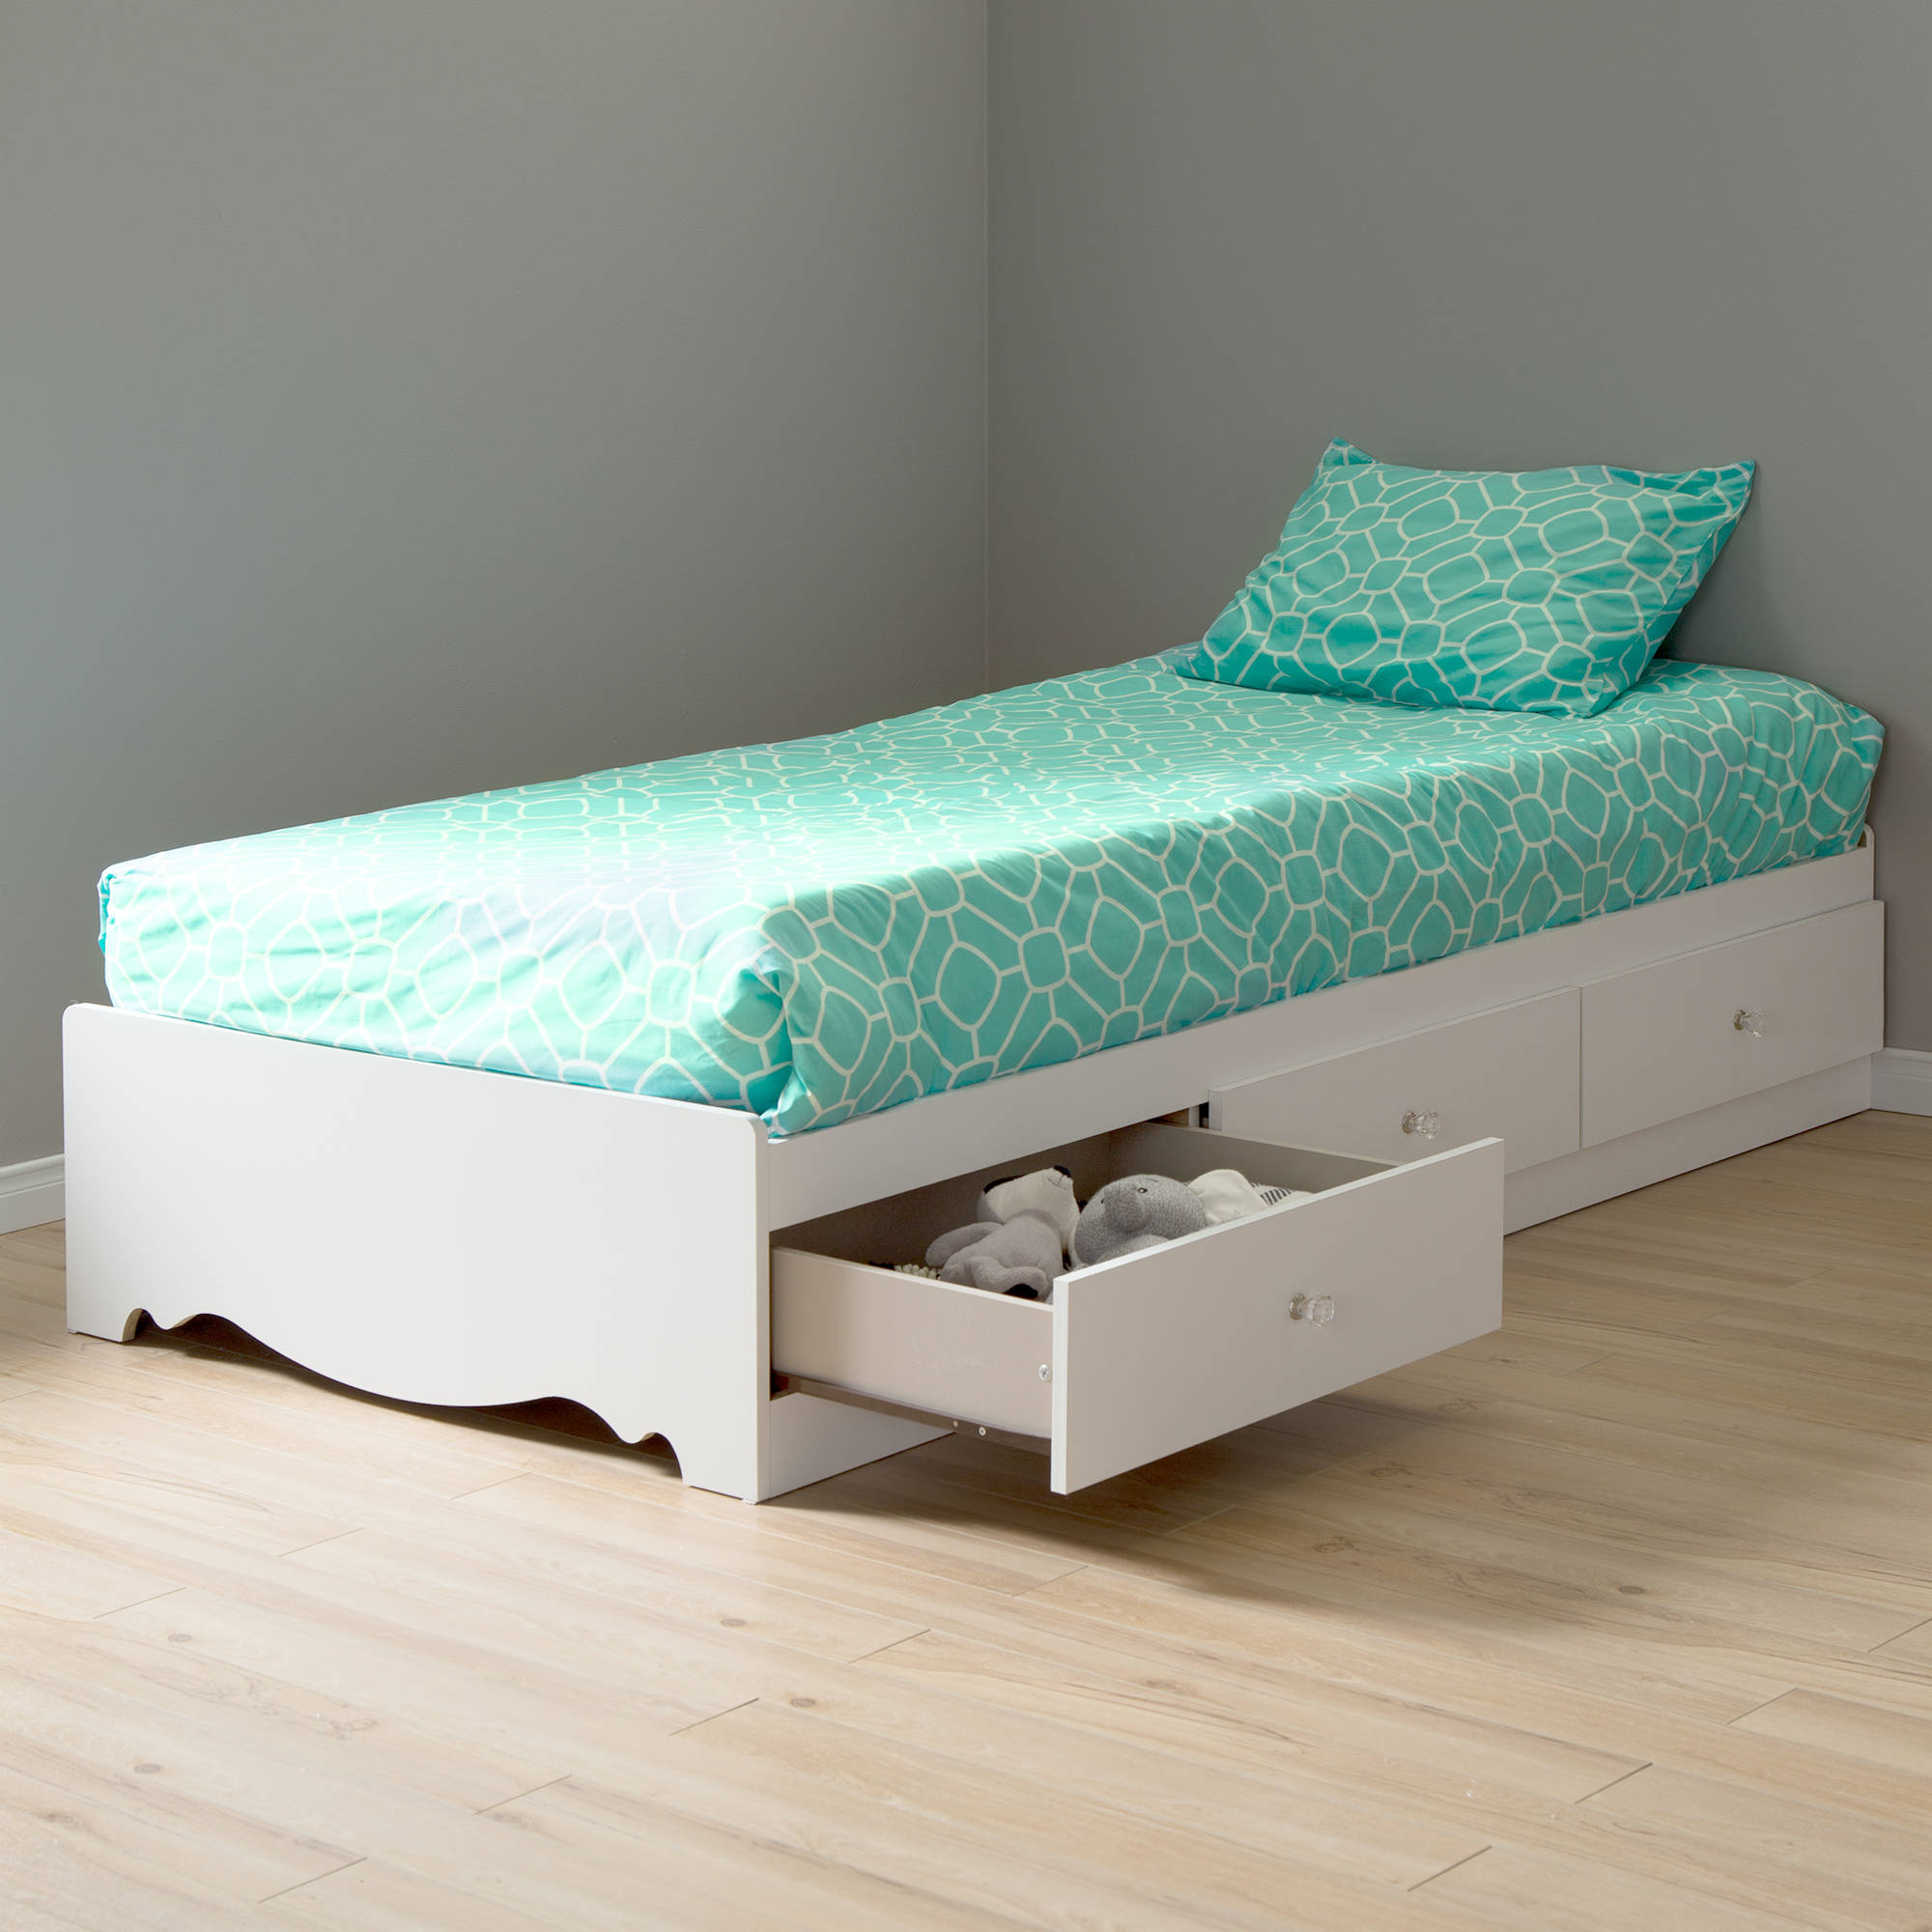 Crystal twin storage bed 39 with 3 drawers pure white walmart com